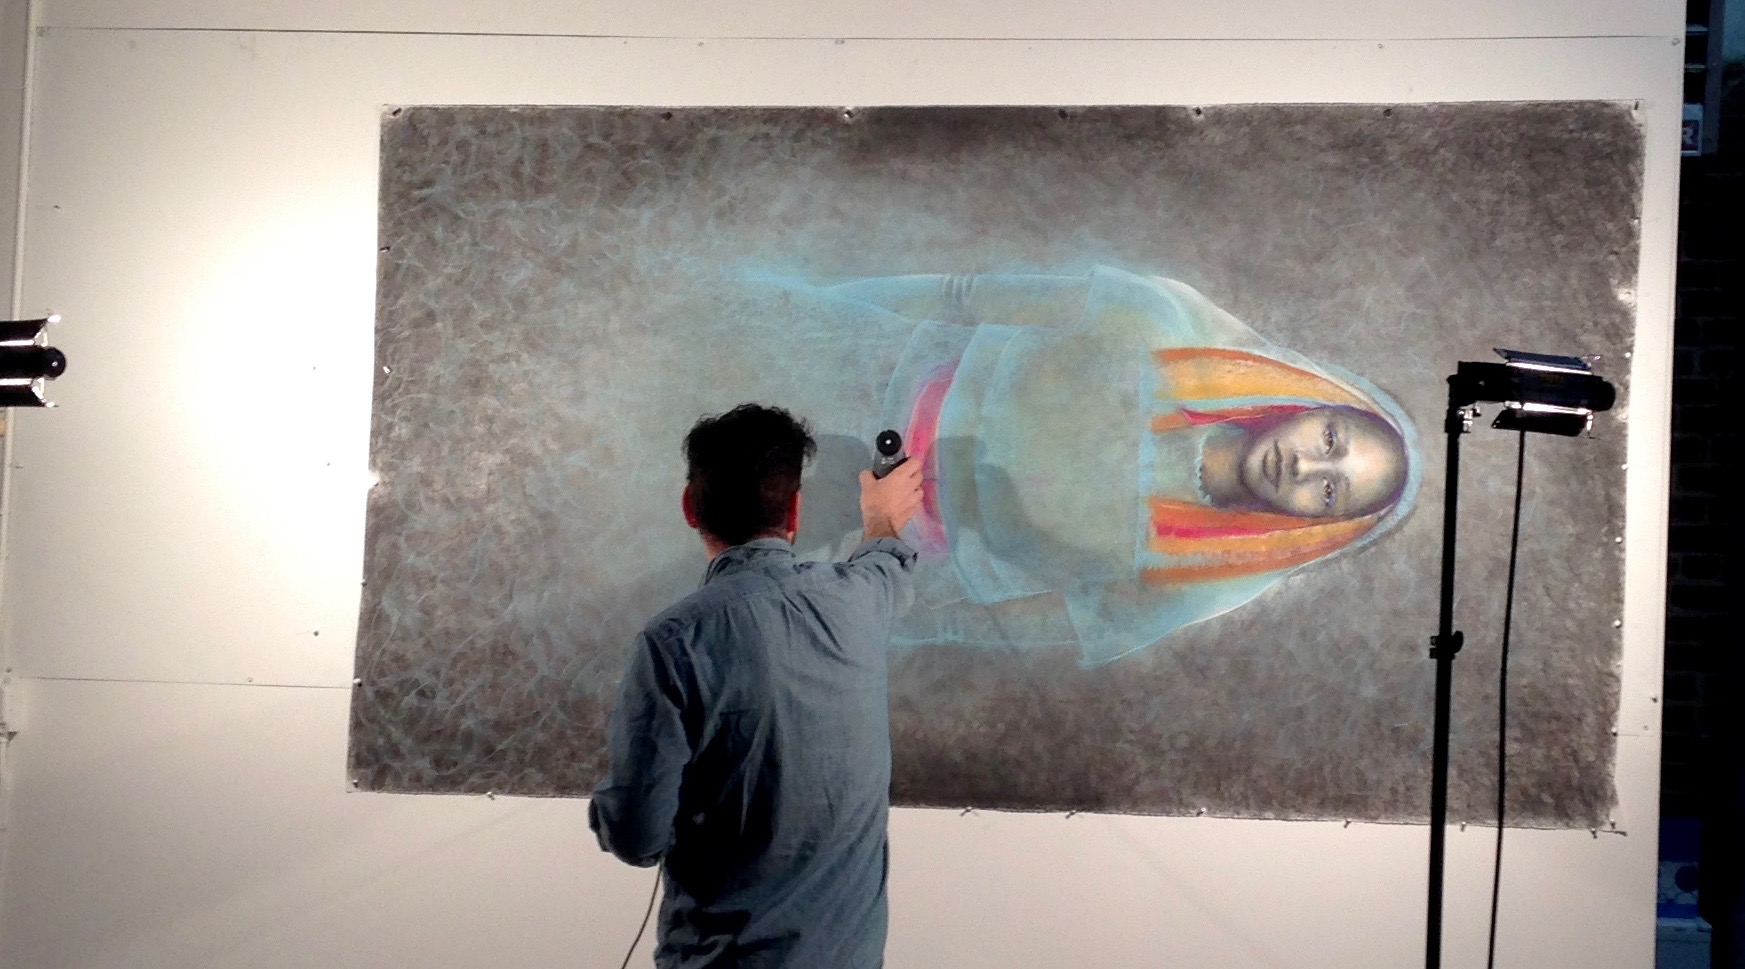 """Candela owner, Brad Boca, checking light settings in preparation for the process of the digital image capture of original drawing, """"Lamar."""""""